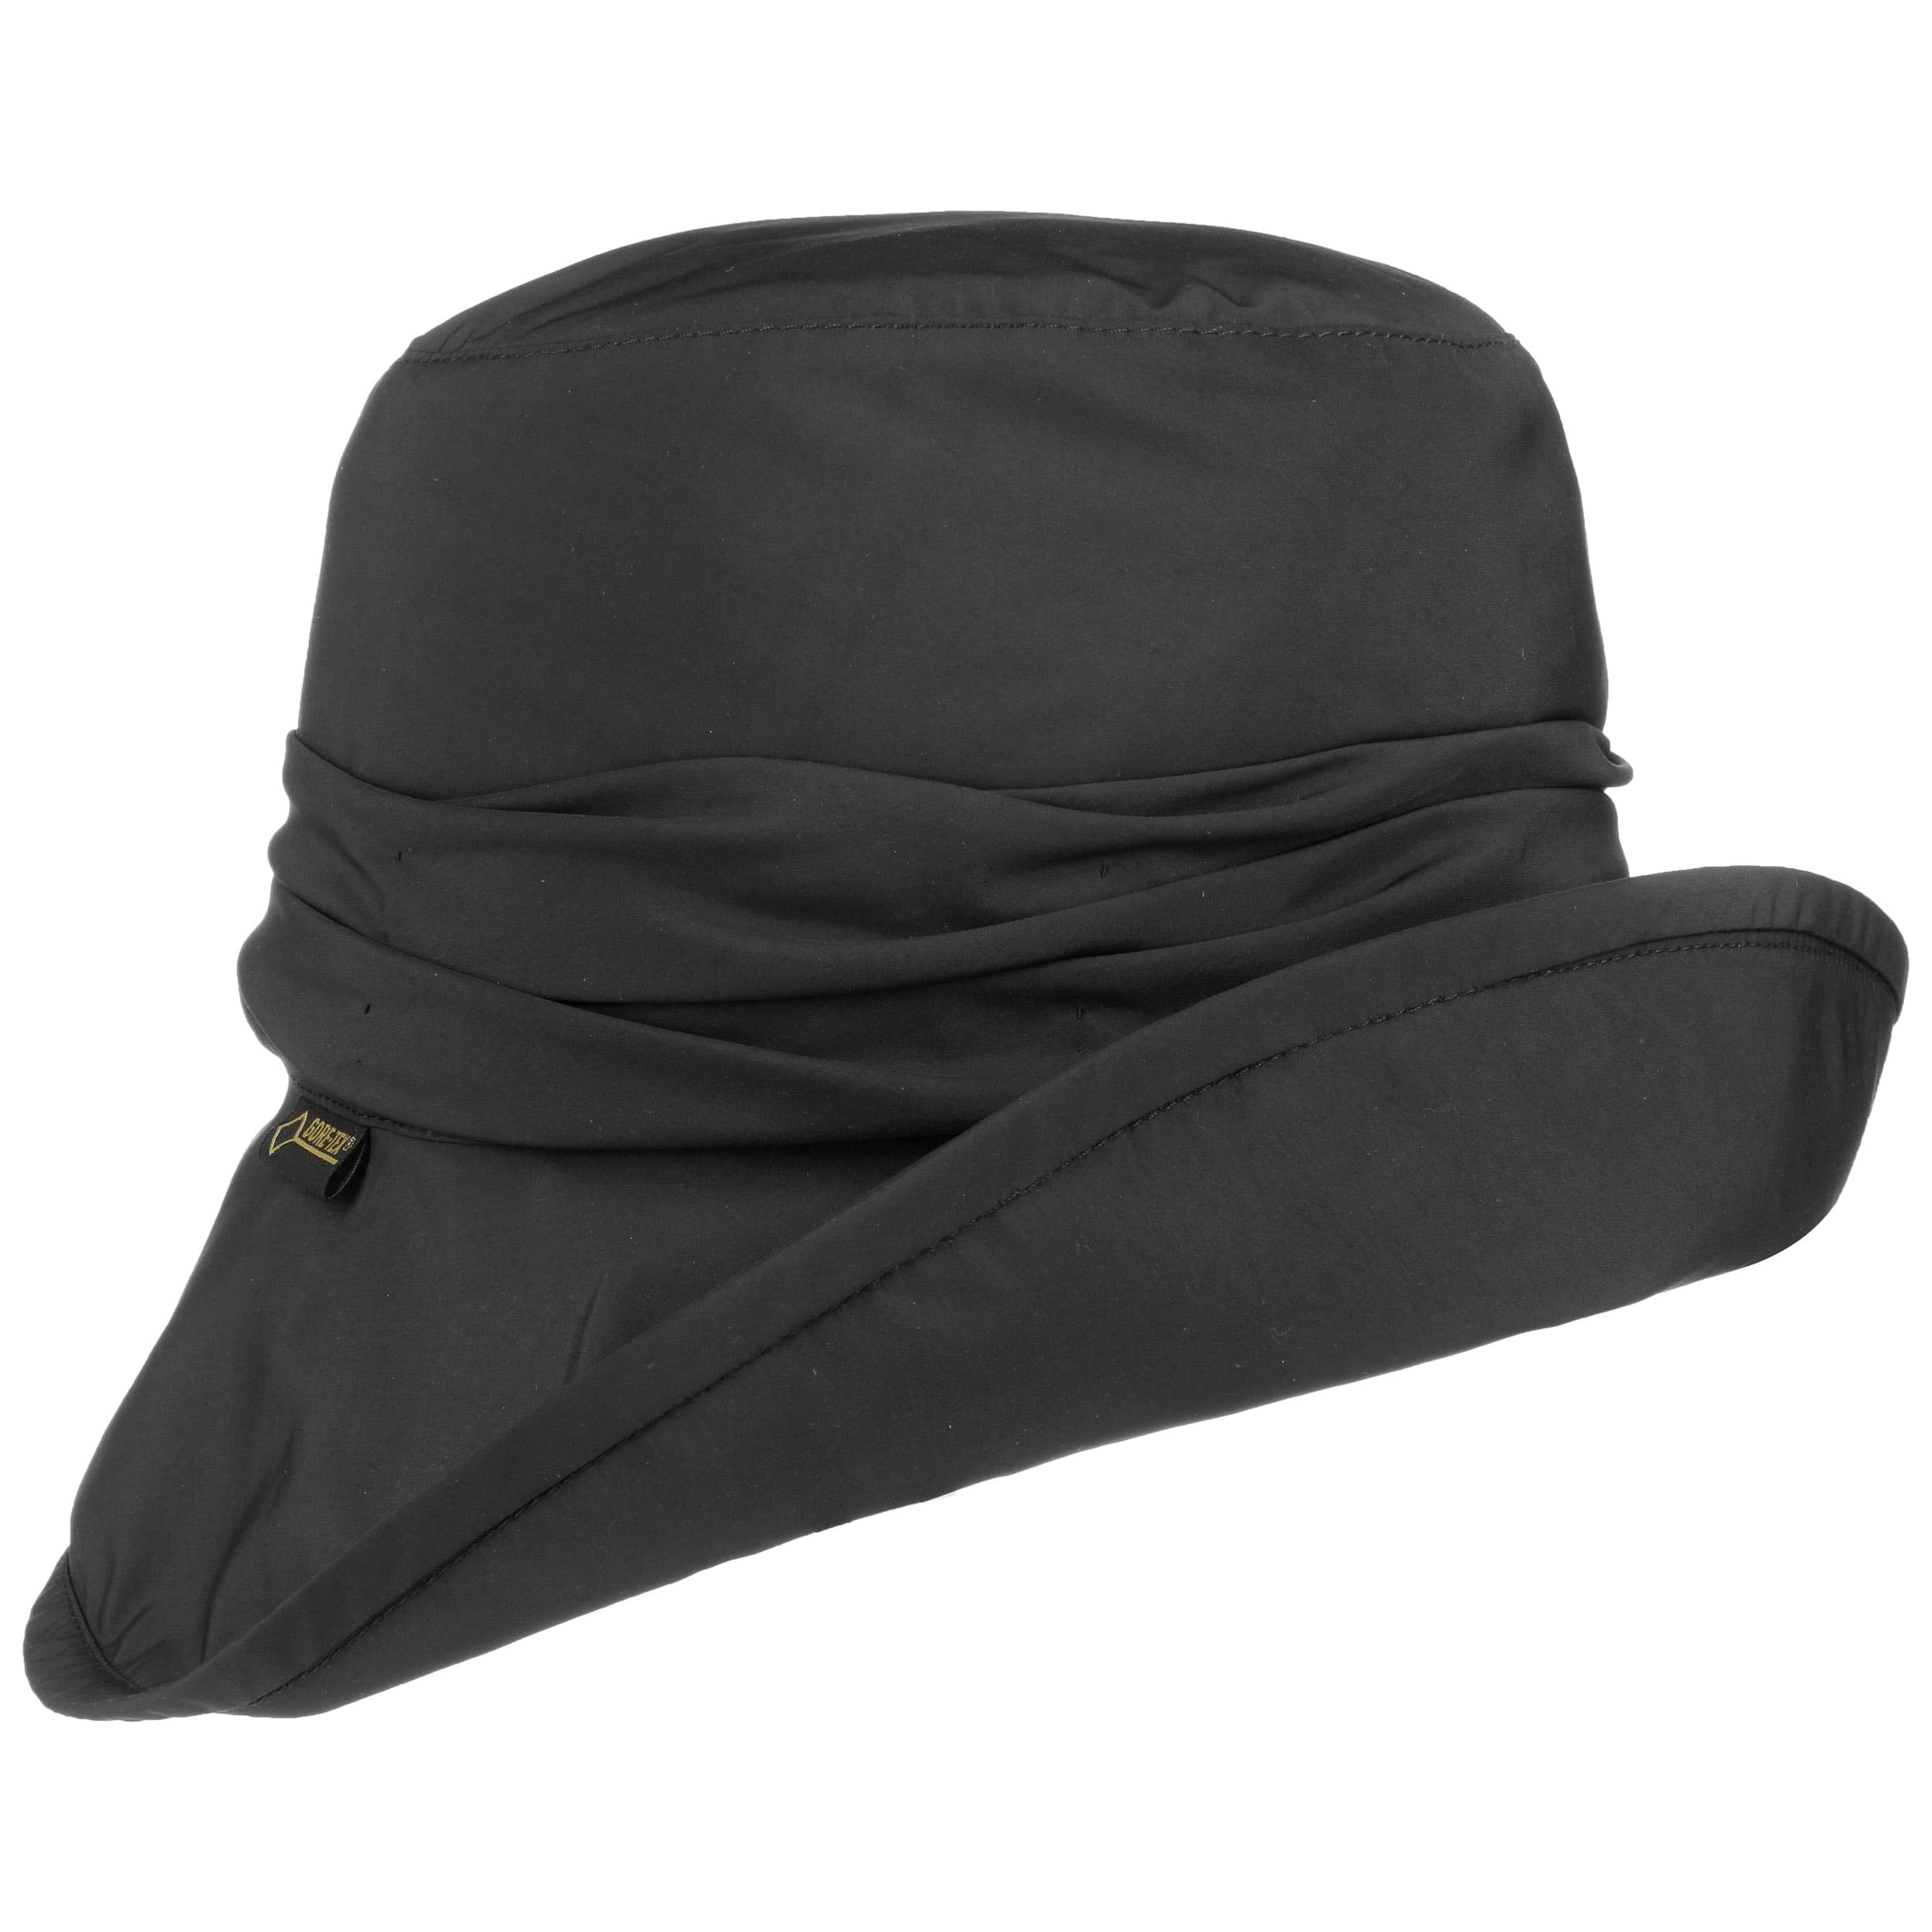 d38efbb3eaa ... Gore-Tex Lined Rain Hat by Seeberger - black 5 ...